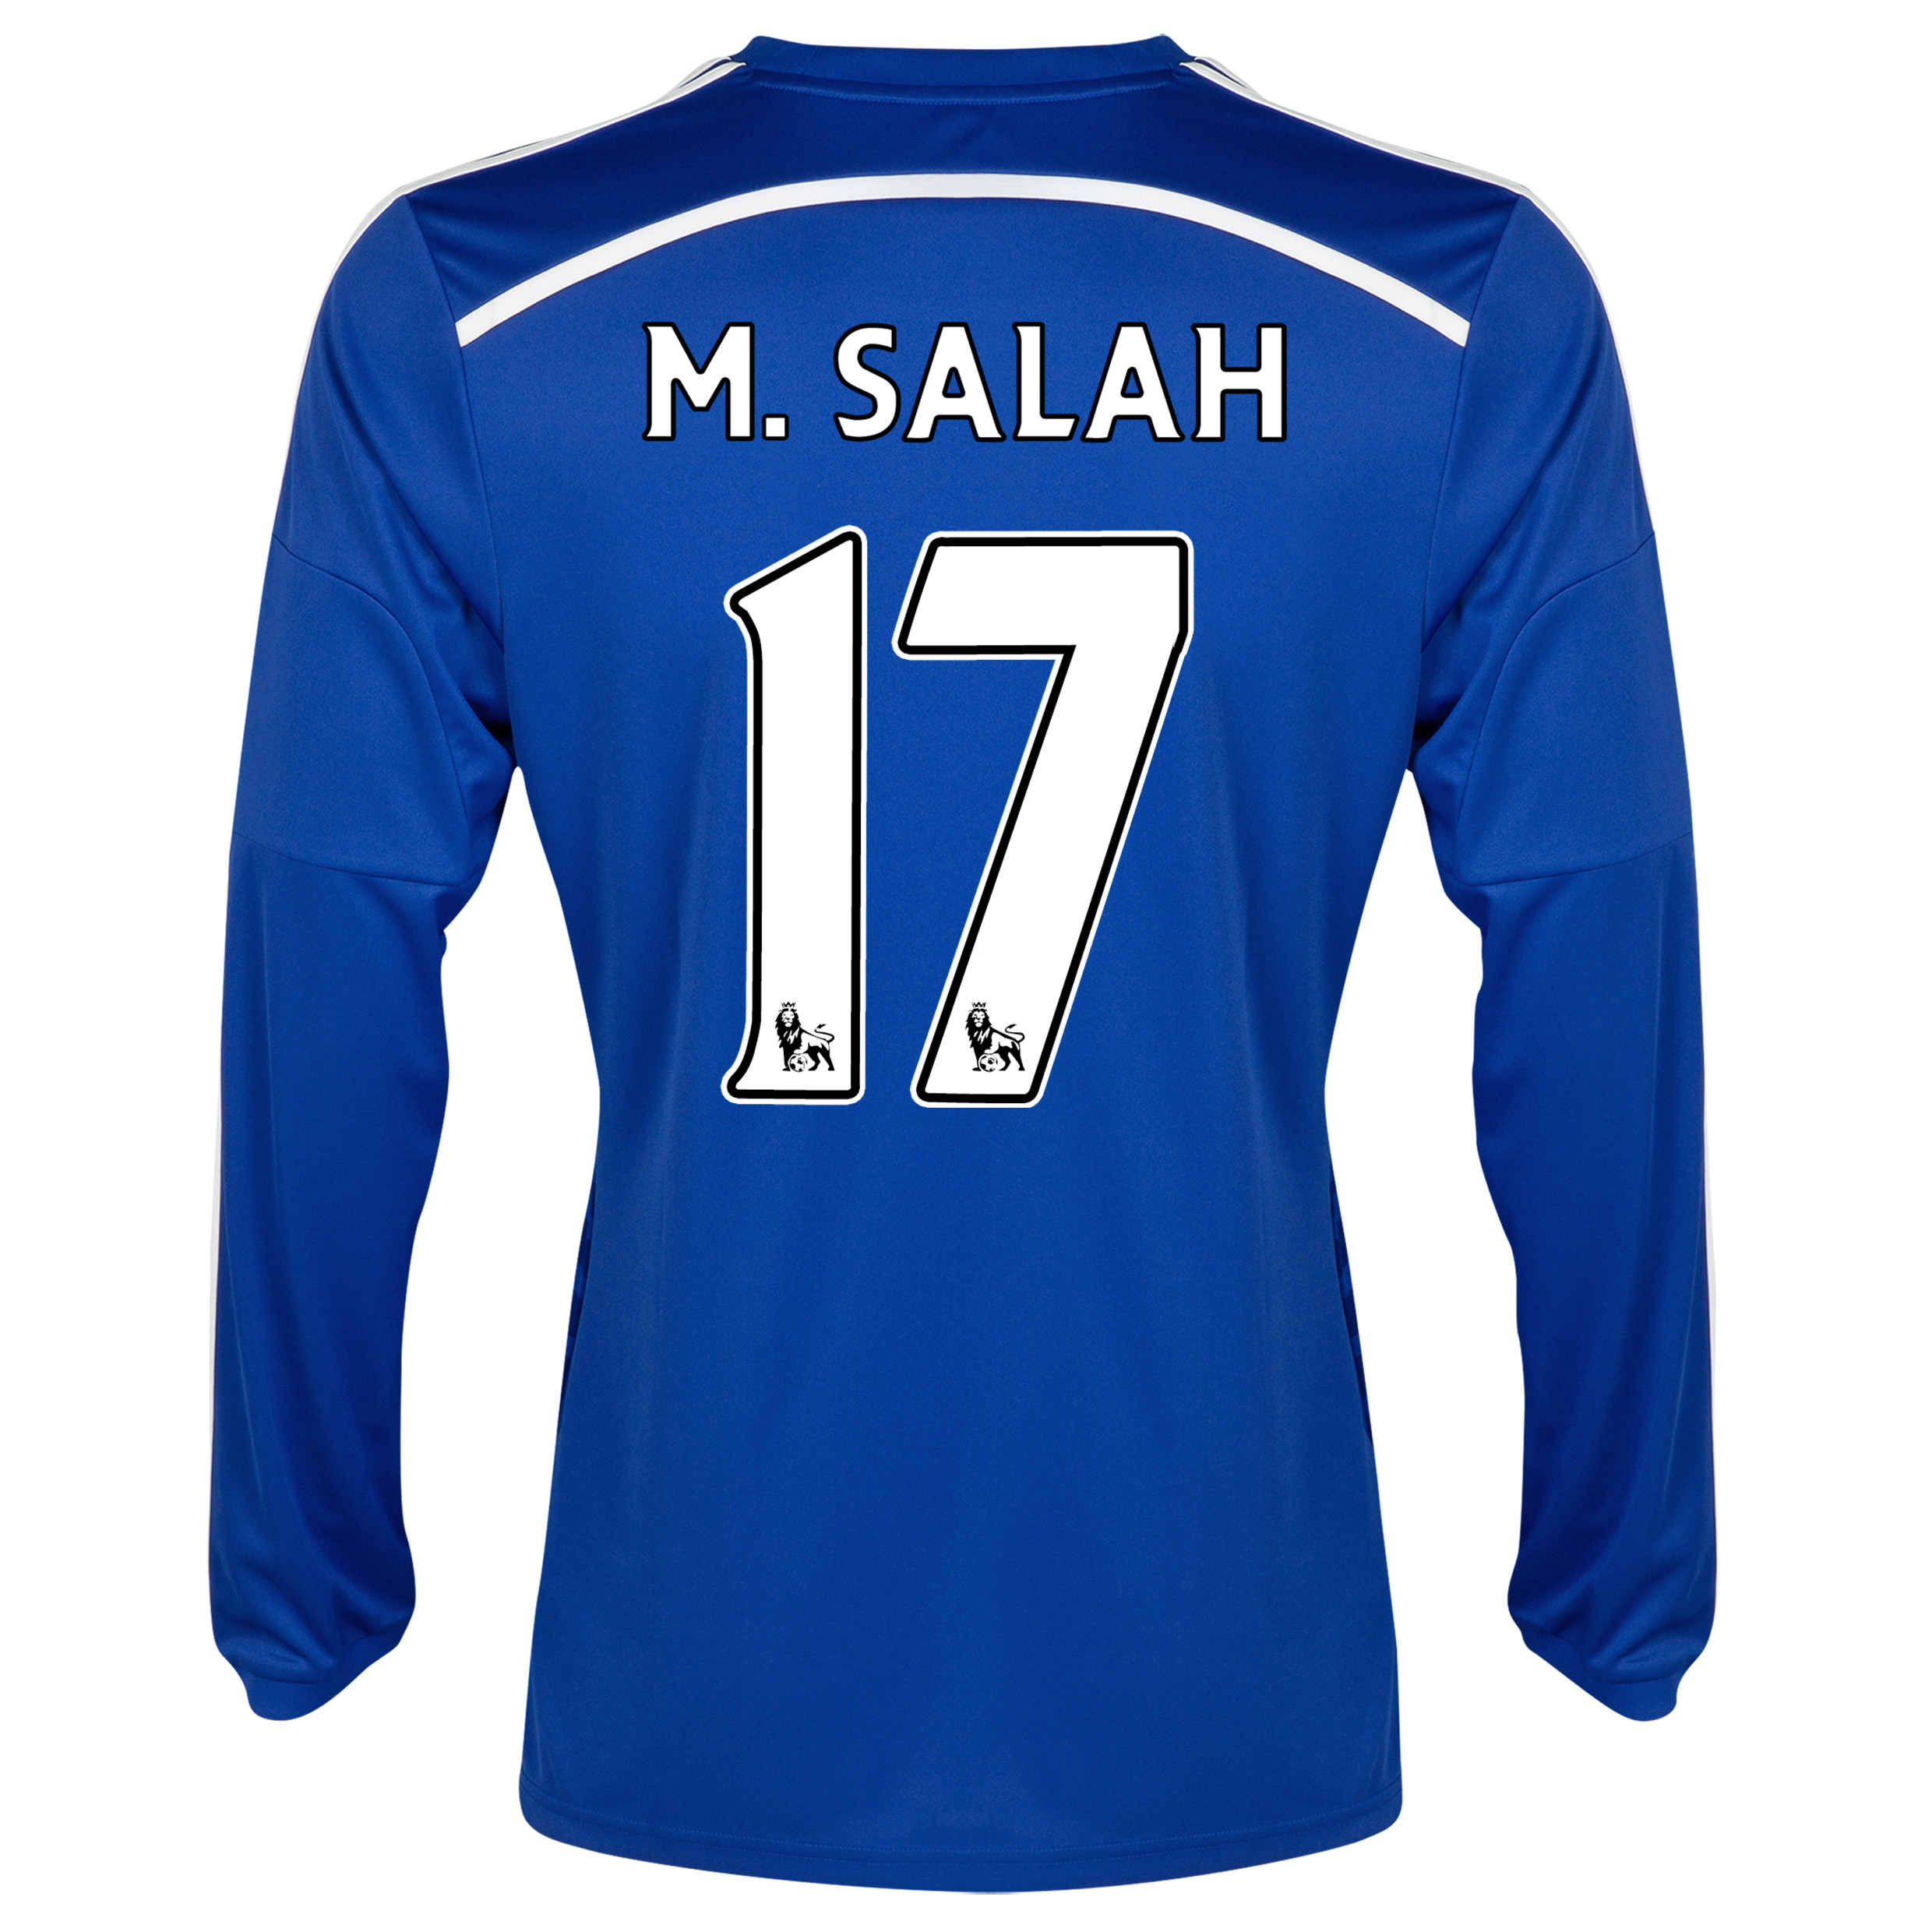 Chelsea Home Shirt 2014/15 - Long Sleeve - Kids Blue with M. Salah 17 printing